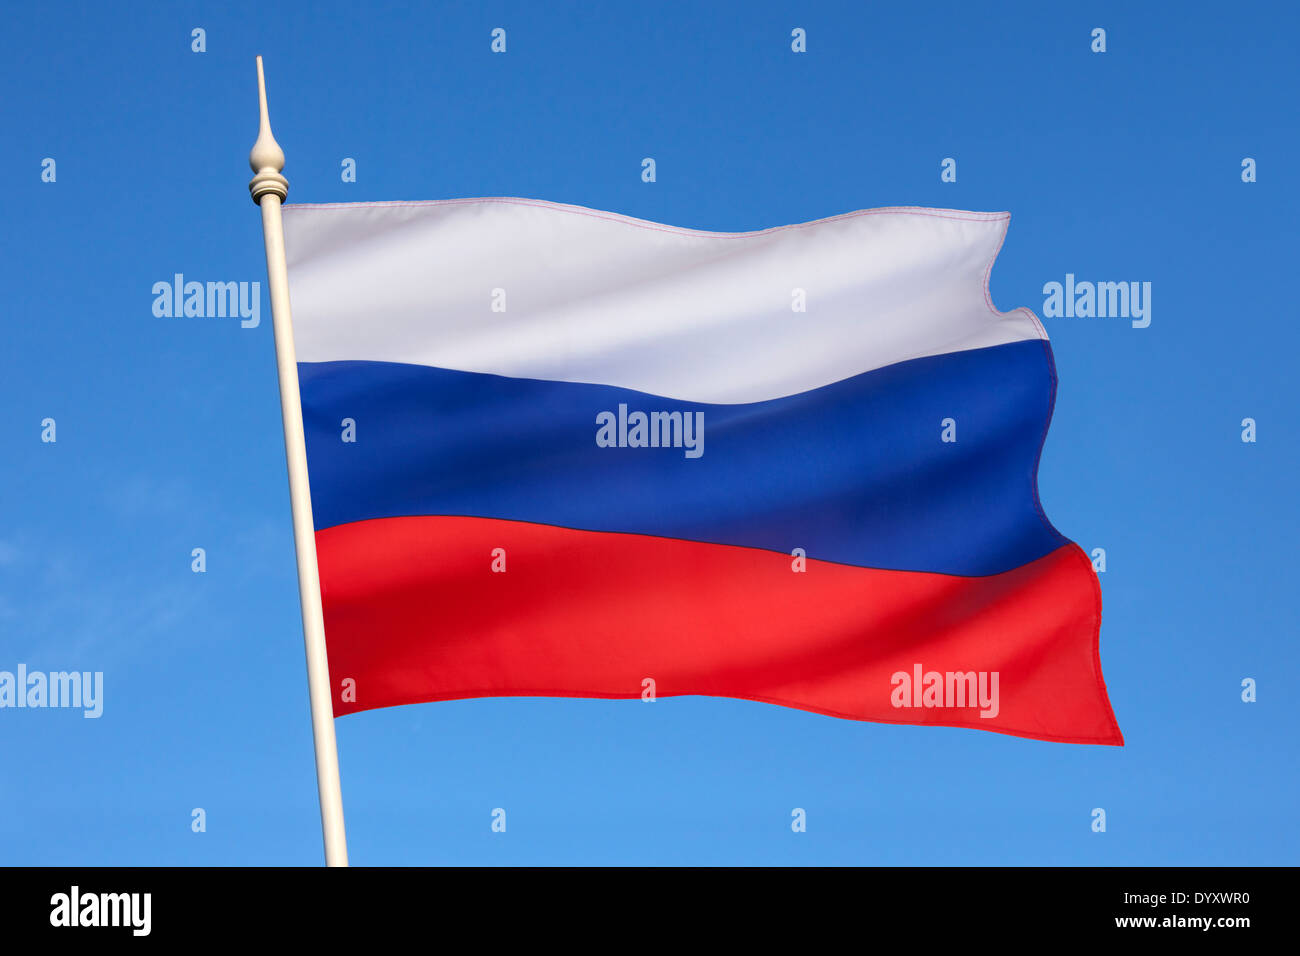 Flag of the Russian Federation. - Stock Image